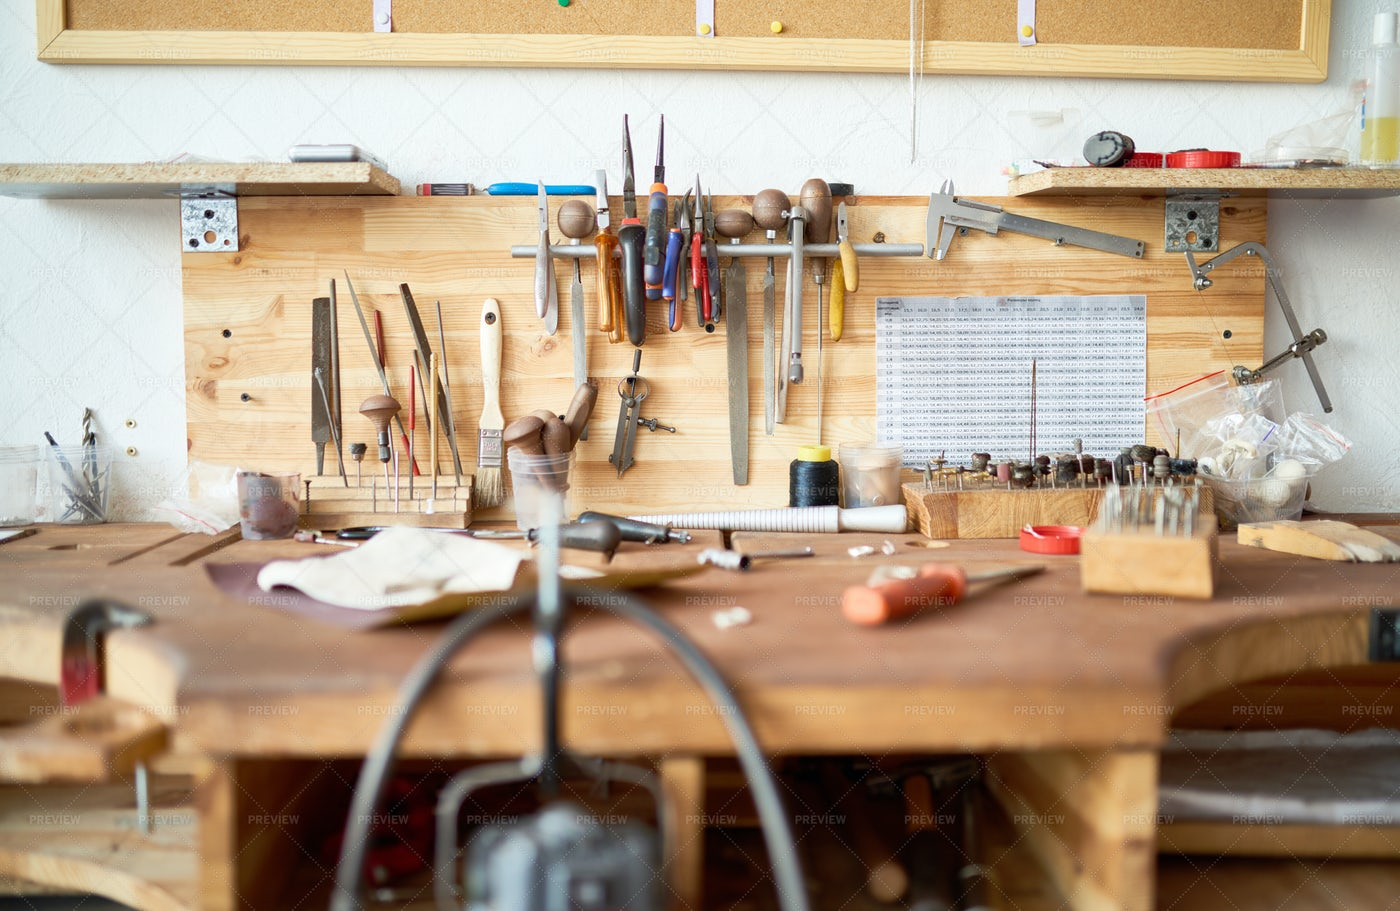 Workshop Table With Tools: Stock Photos